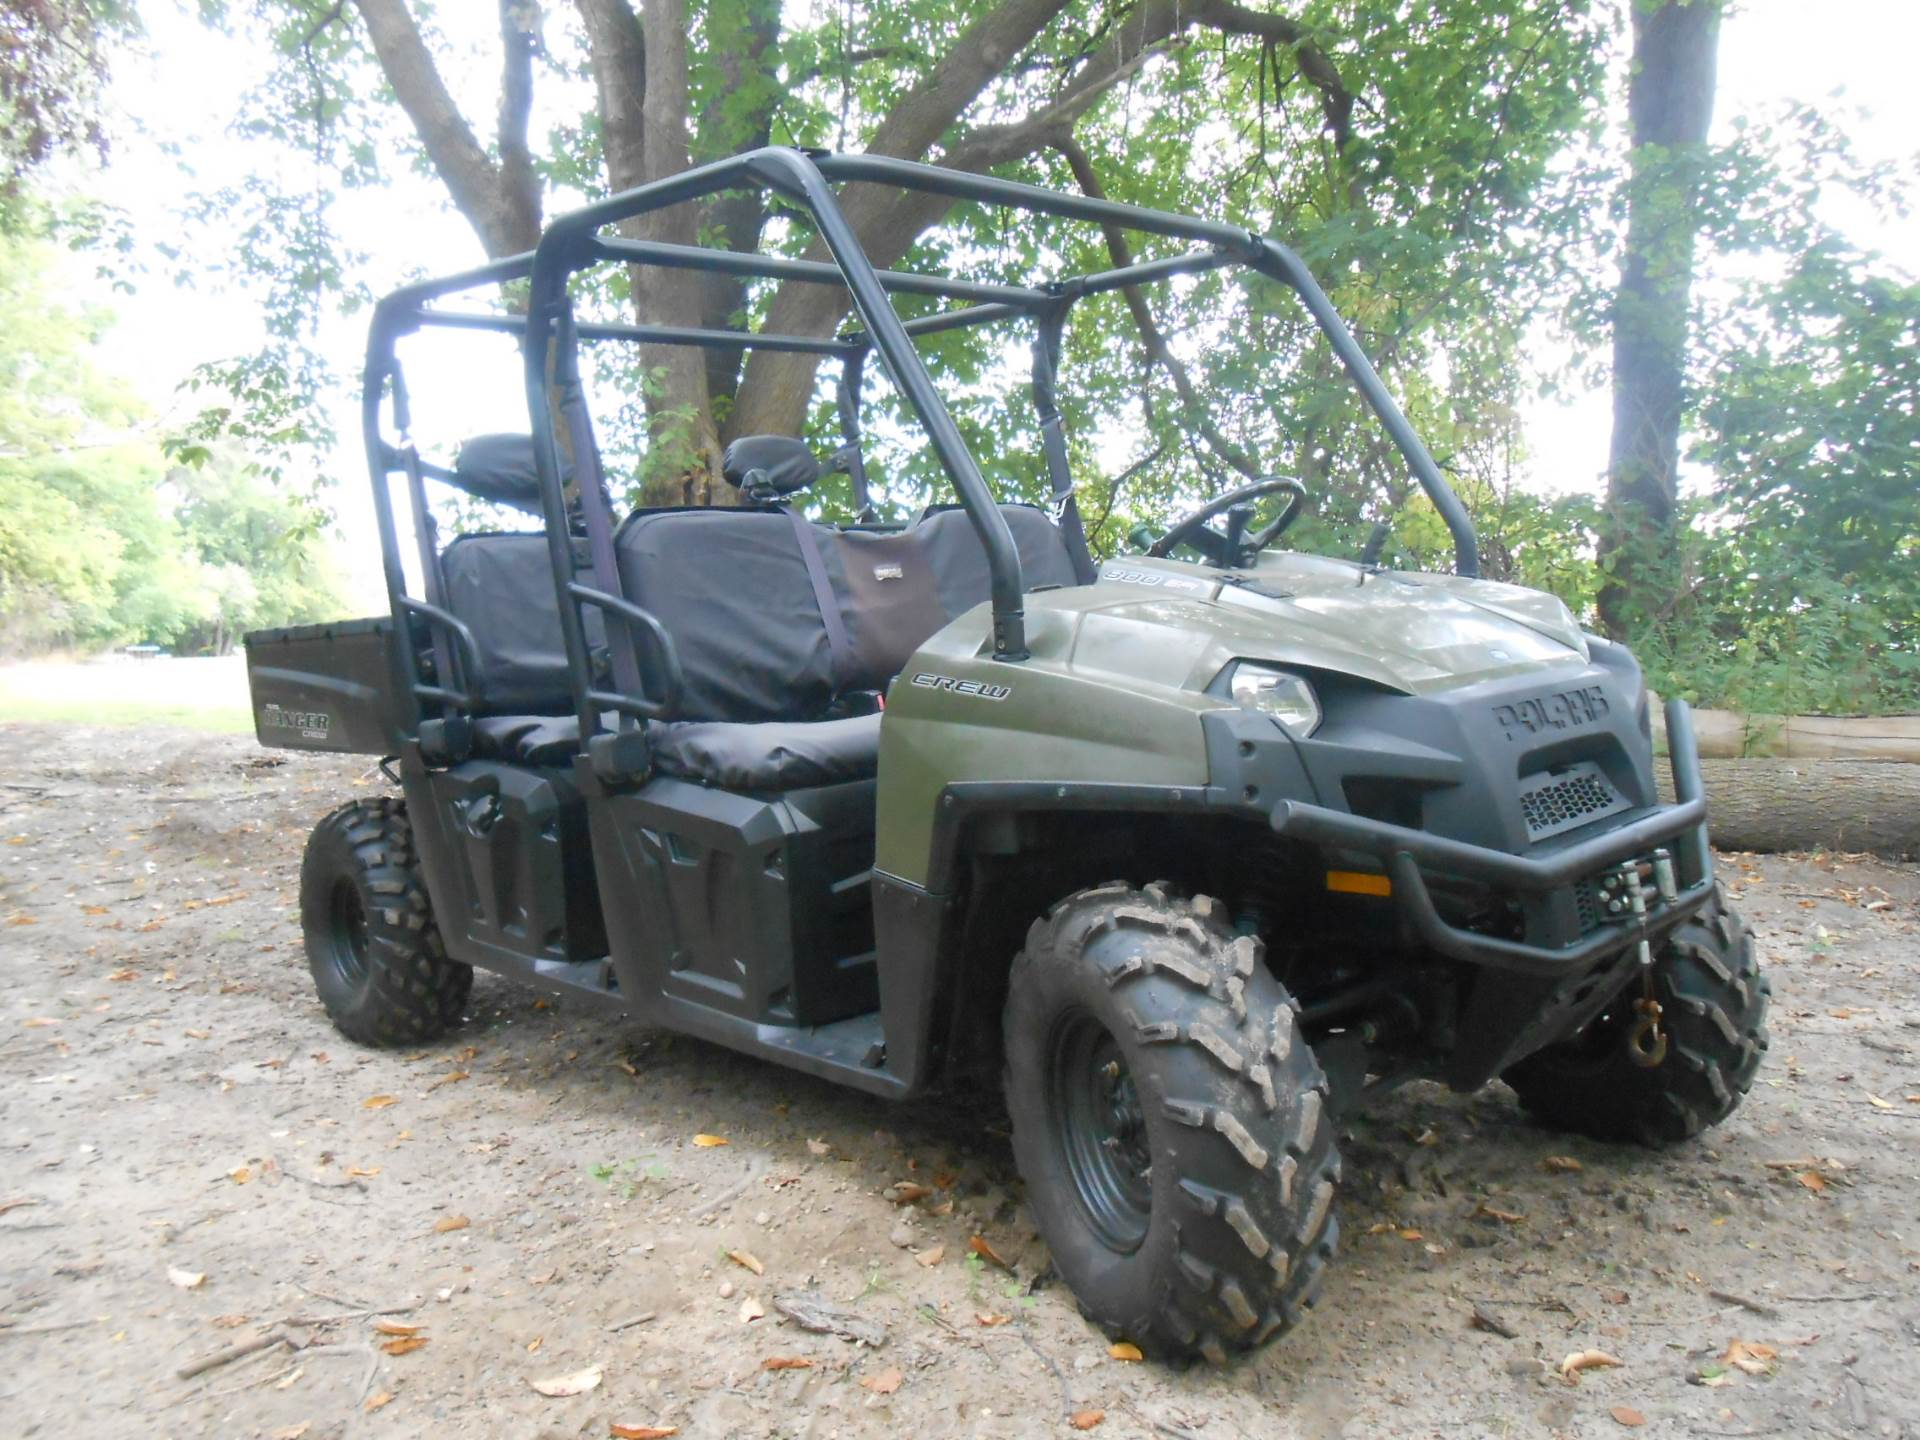 2014 Polaris Ranger Crew® 800 EFI in Howell, Michigan - Photo 12